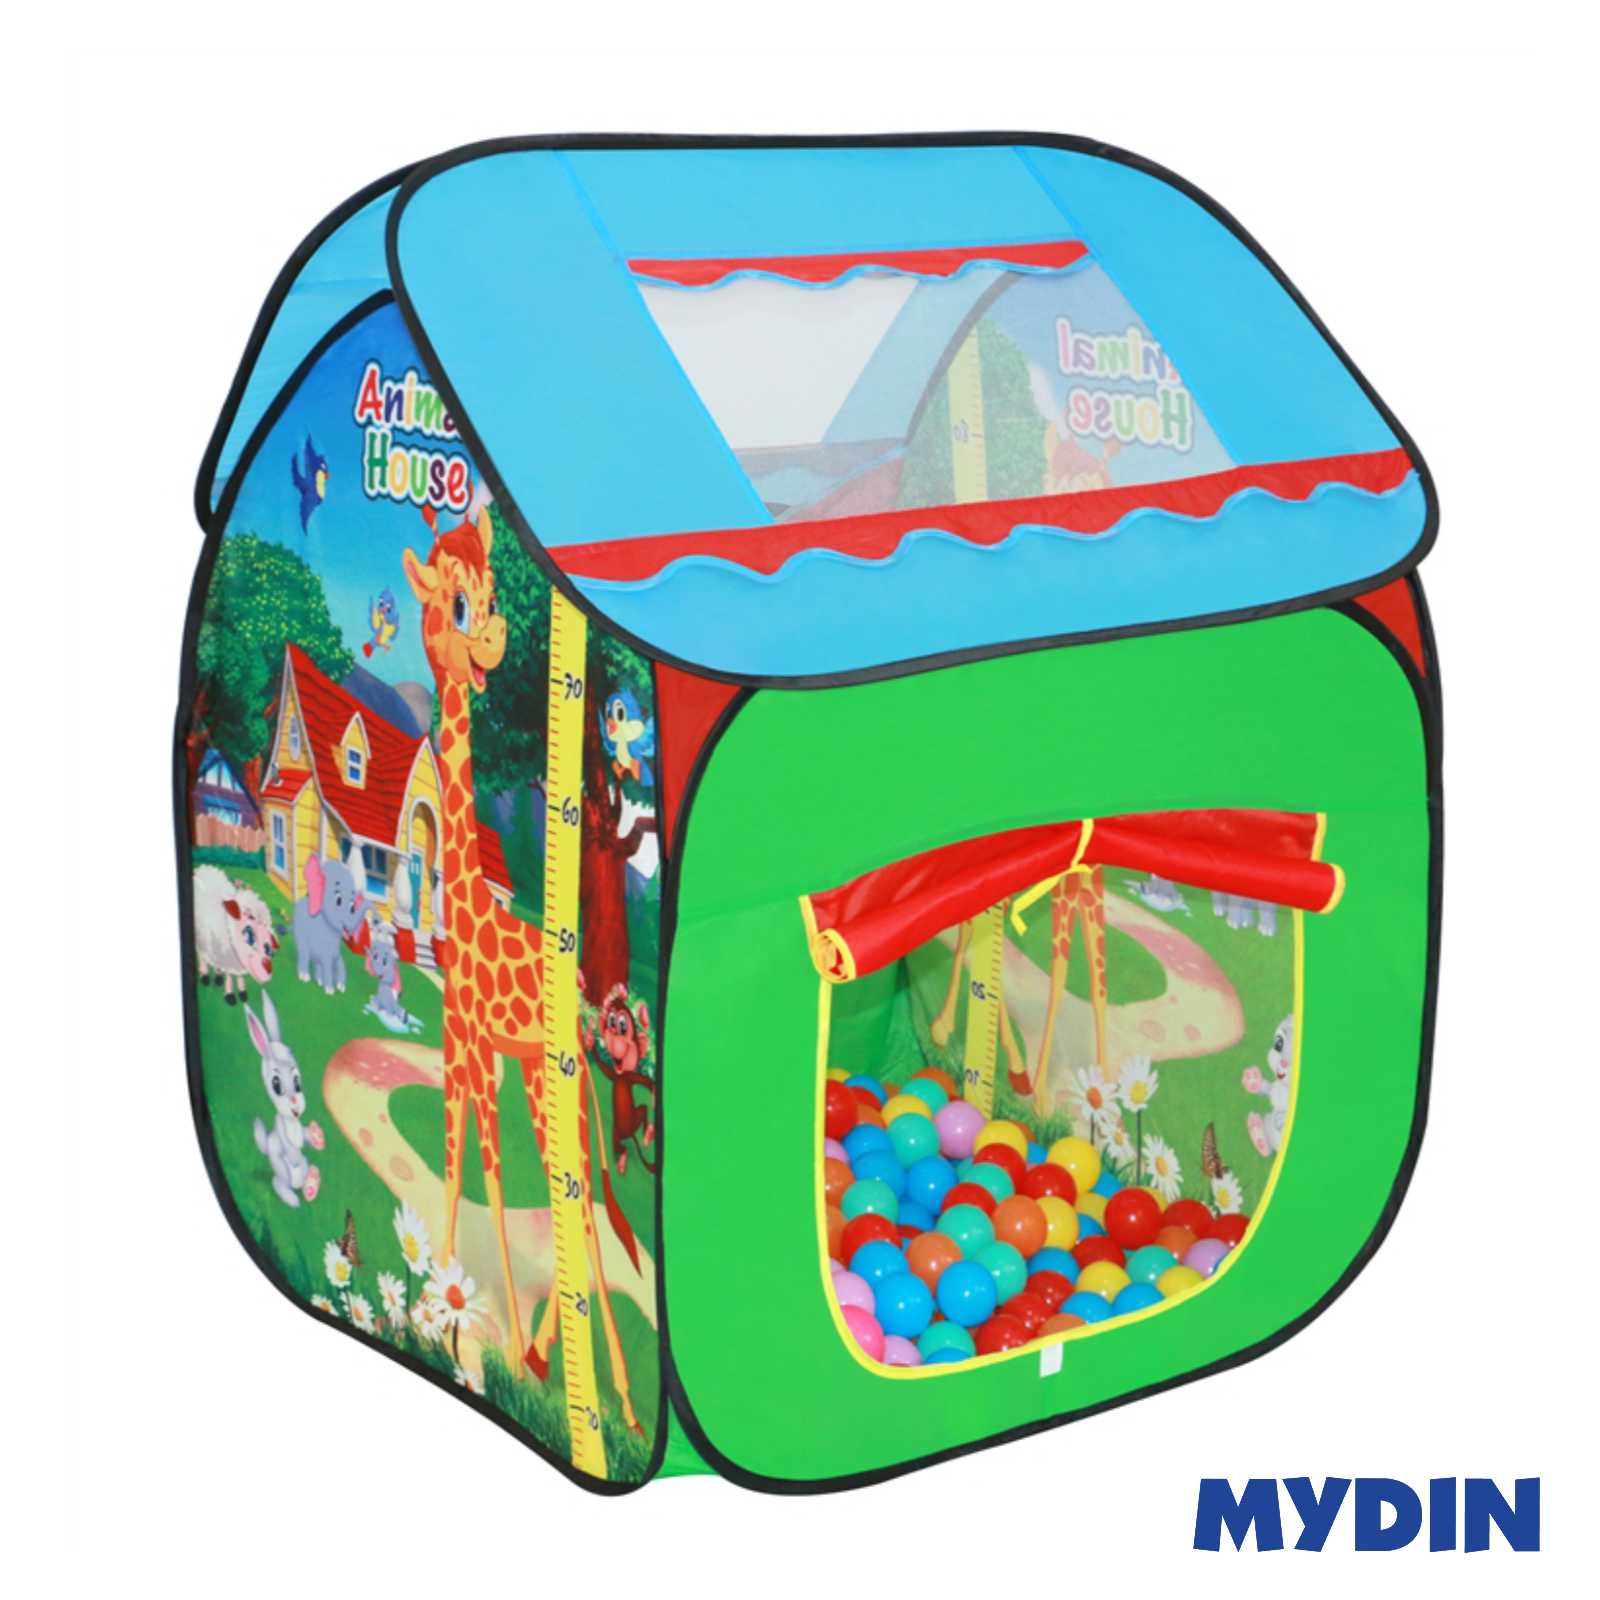 Indoor Portable Animal Tent For Kids CB6022-5760 (1 years +)